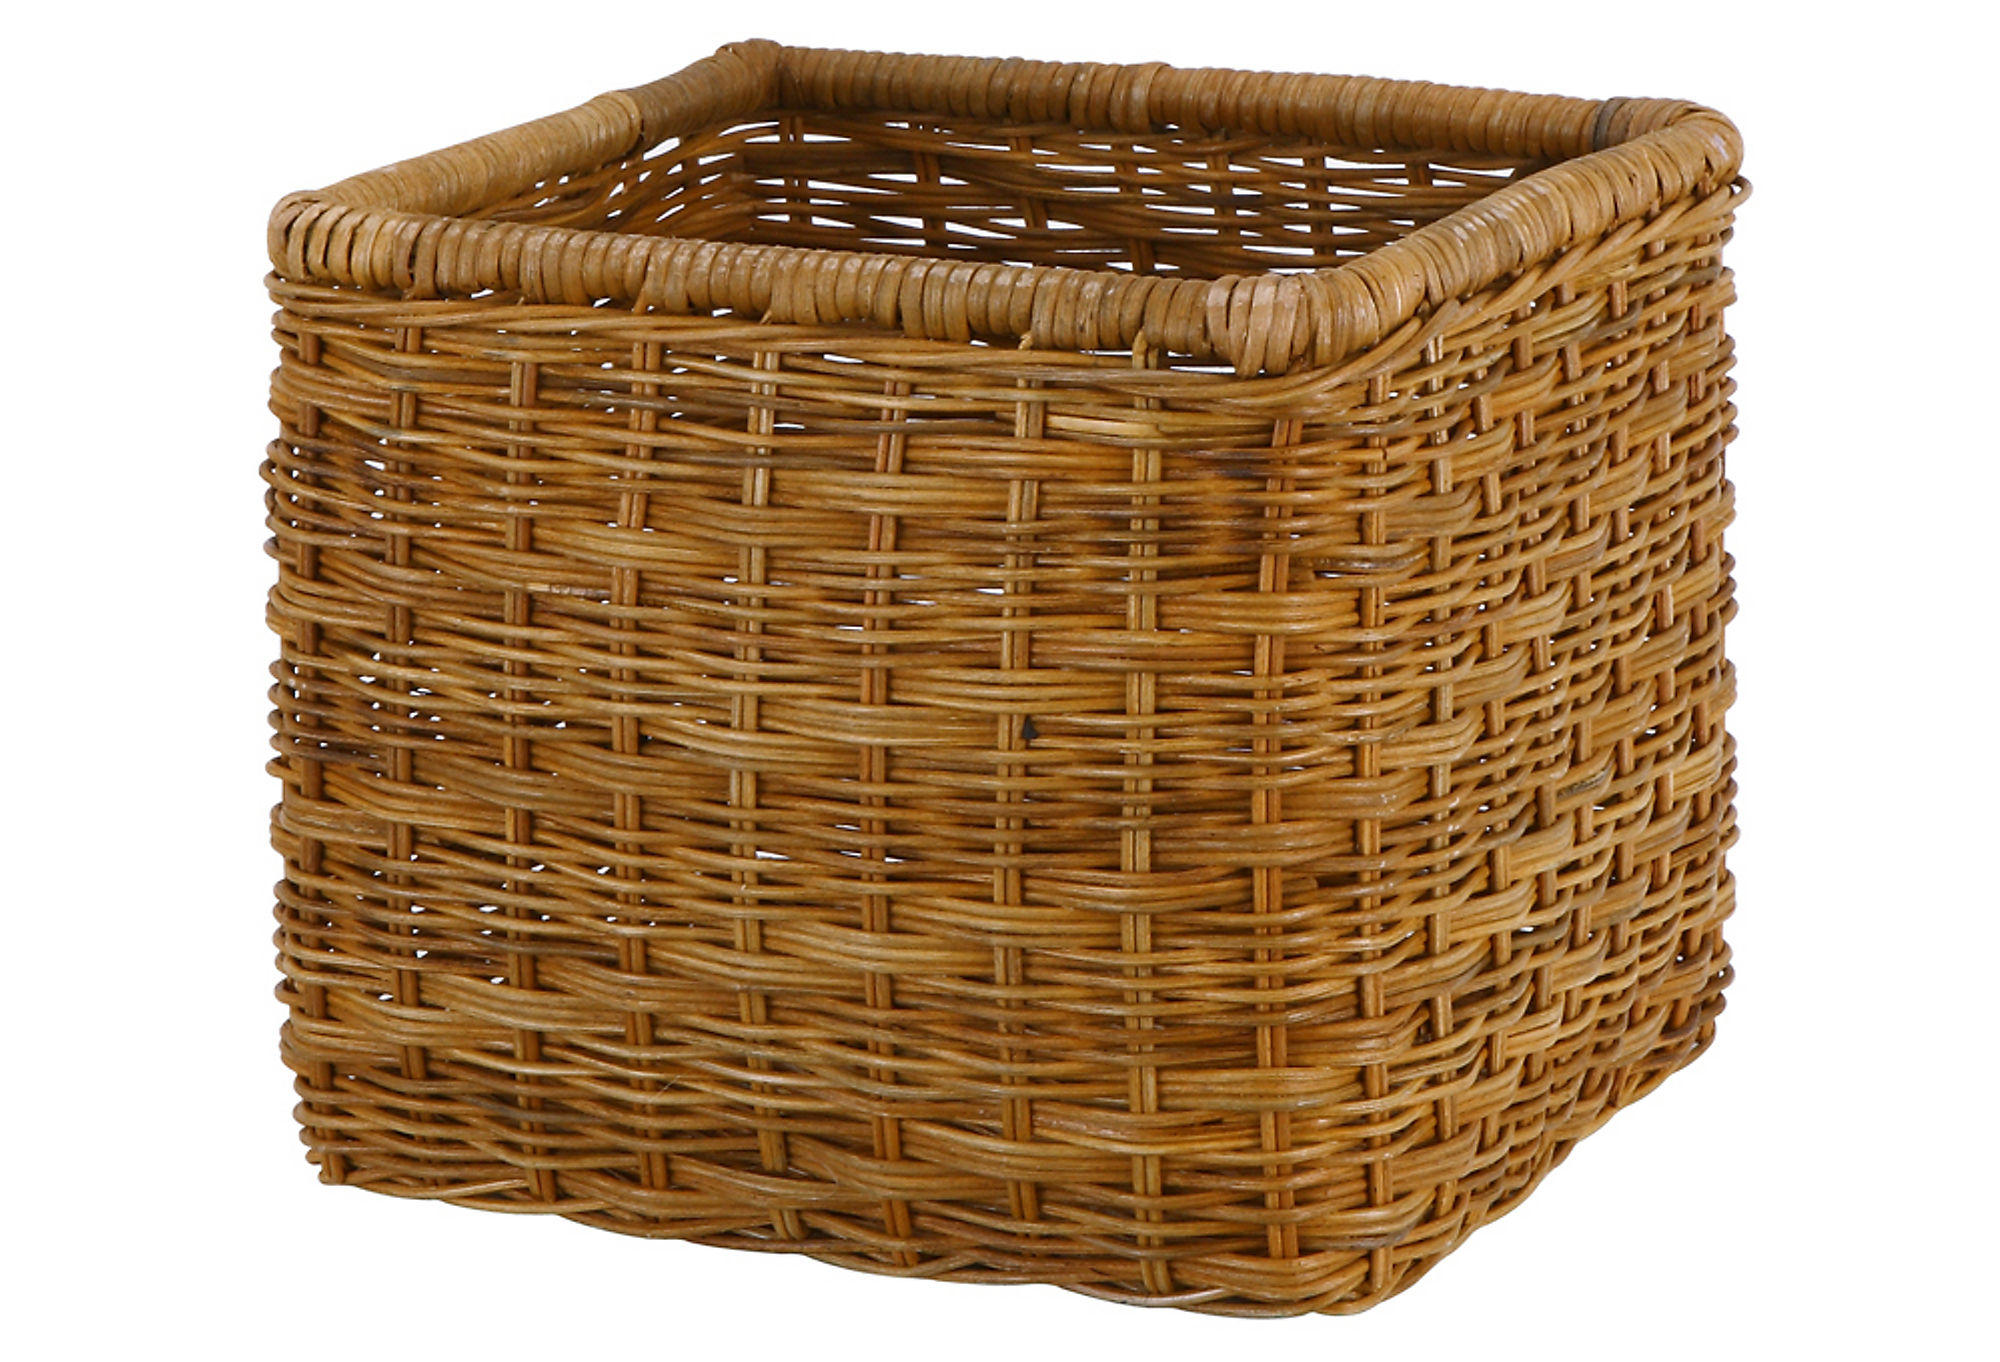 Wicker Basket Storage Cube : Wicker storage cube large from one kings lane